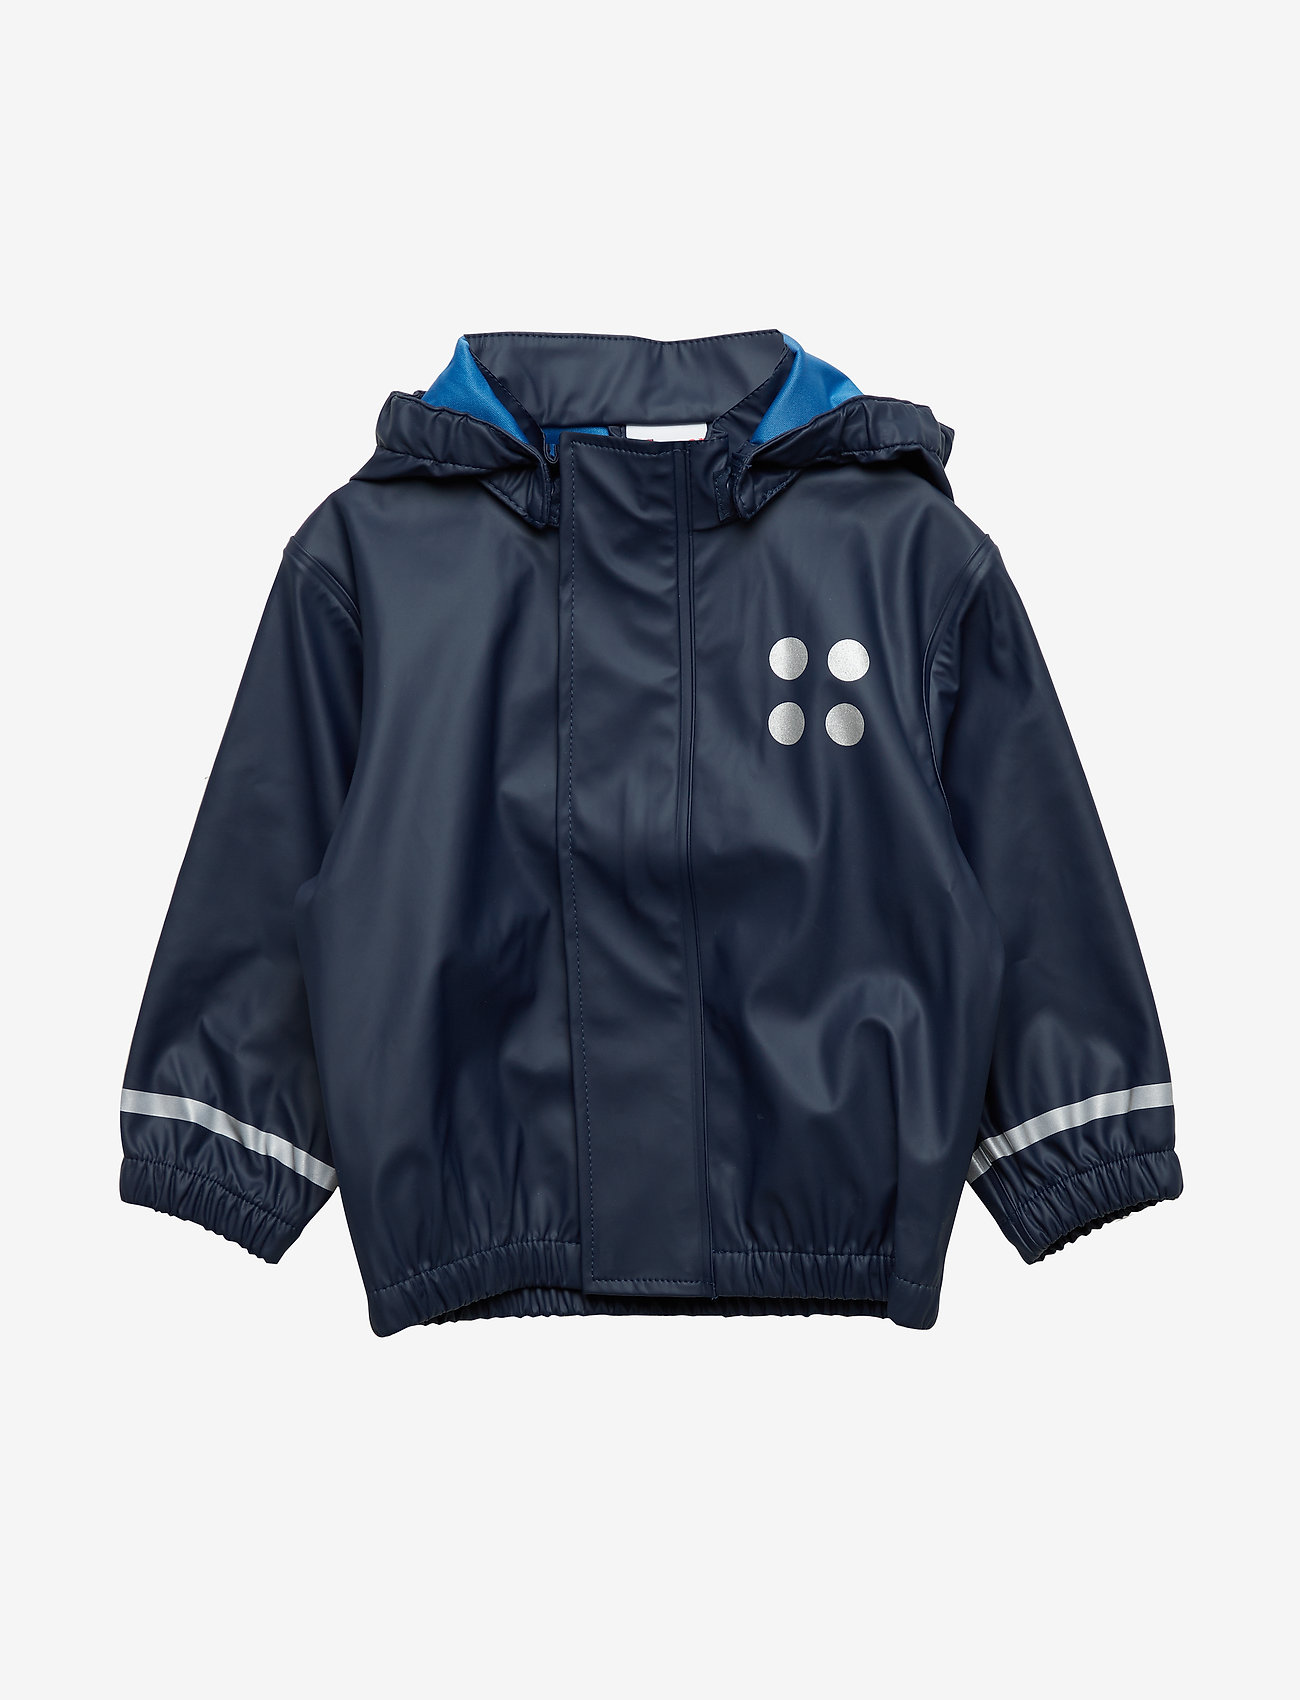 Lego wear - JUSTICE 101 - RAIN JACKET - jassen - dark navy - 0